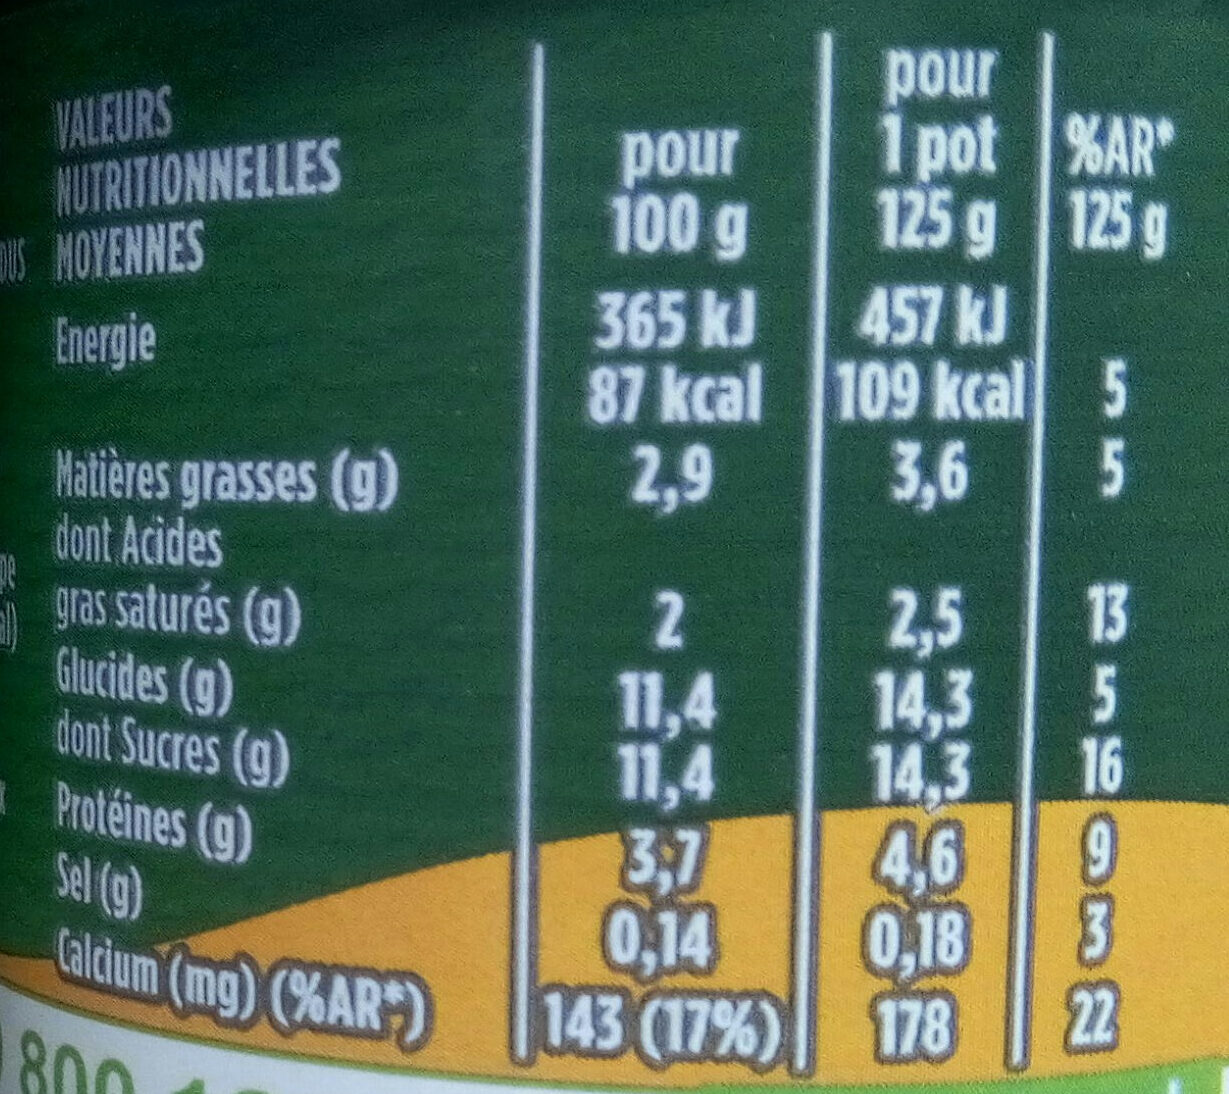 Activia mangue - Nutrition facts - fr